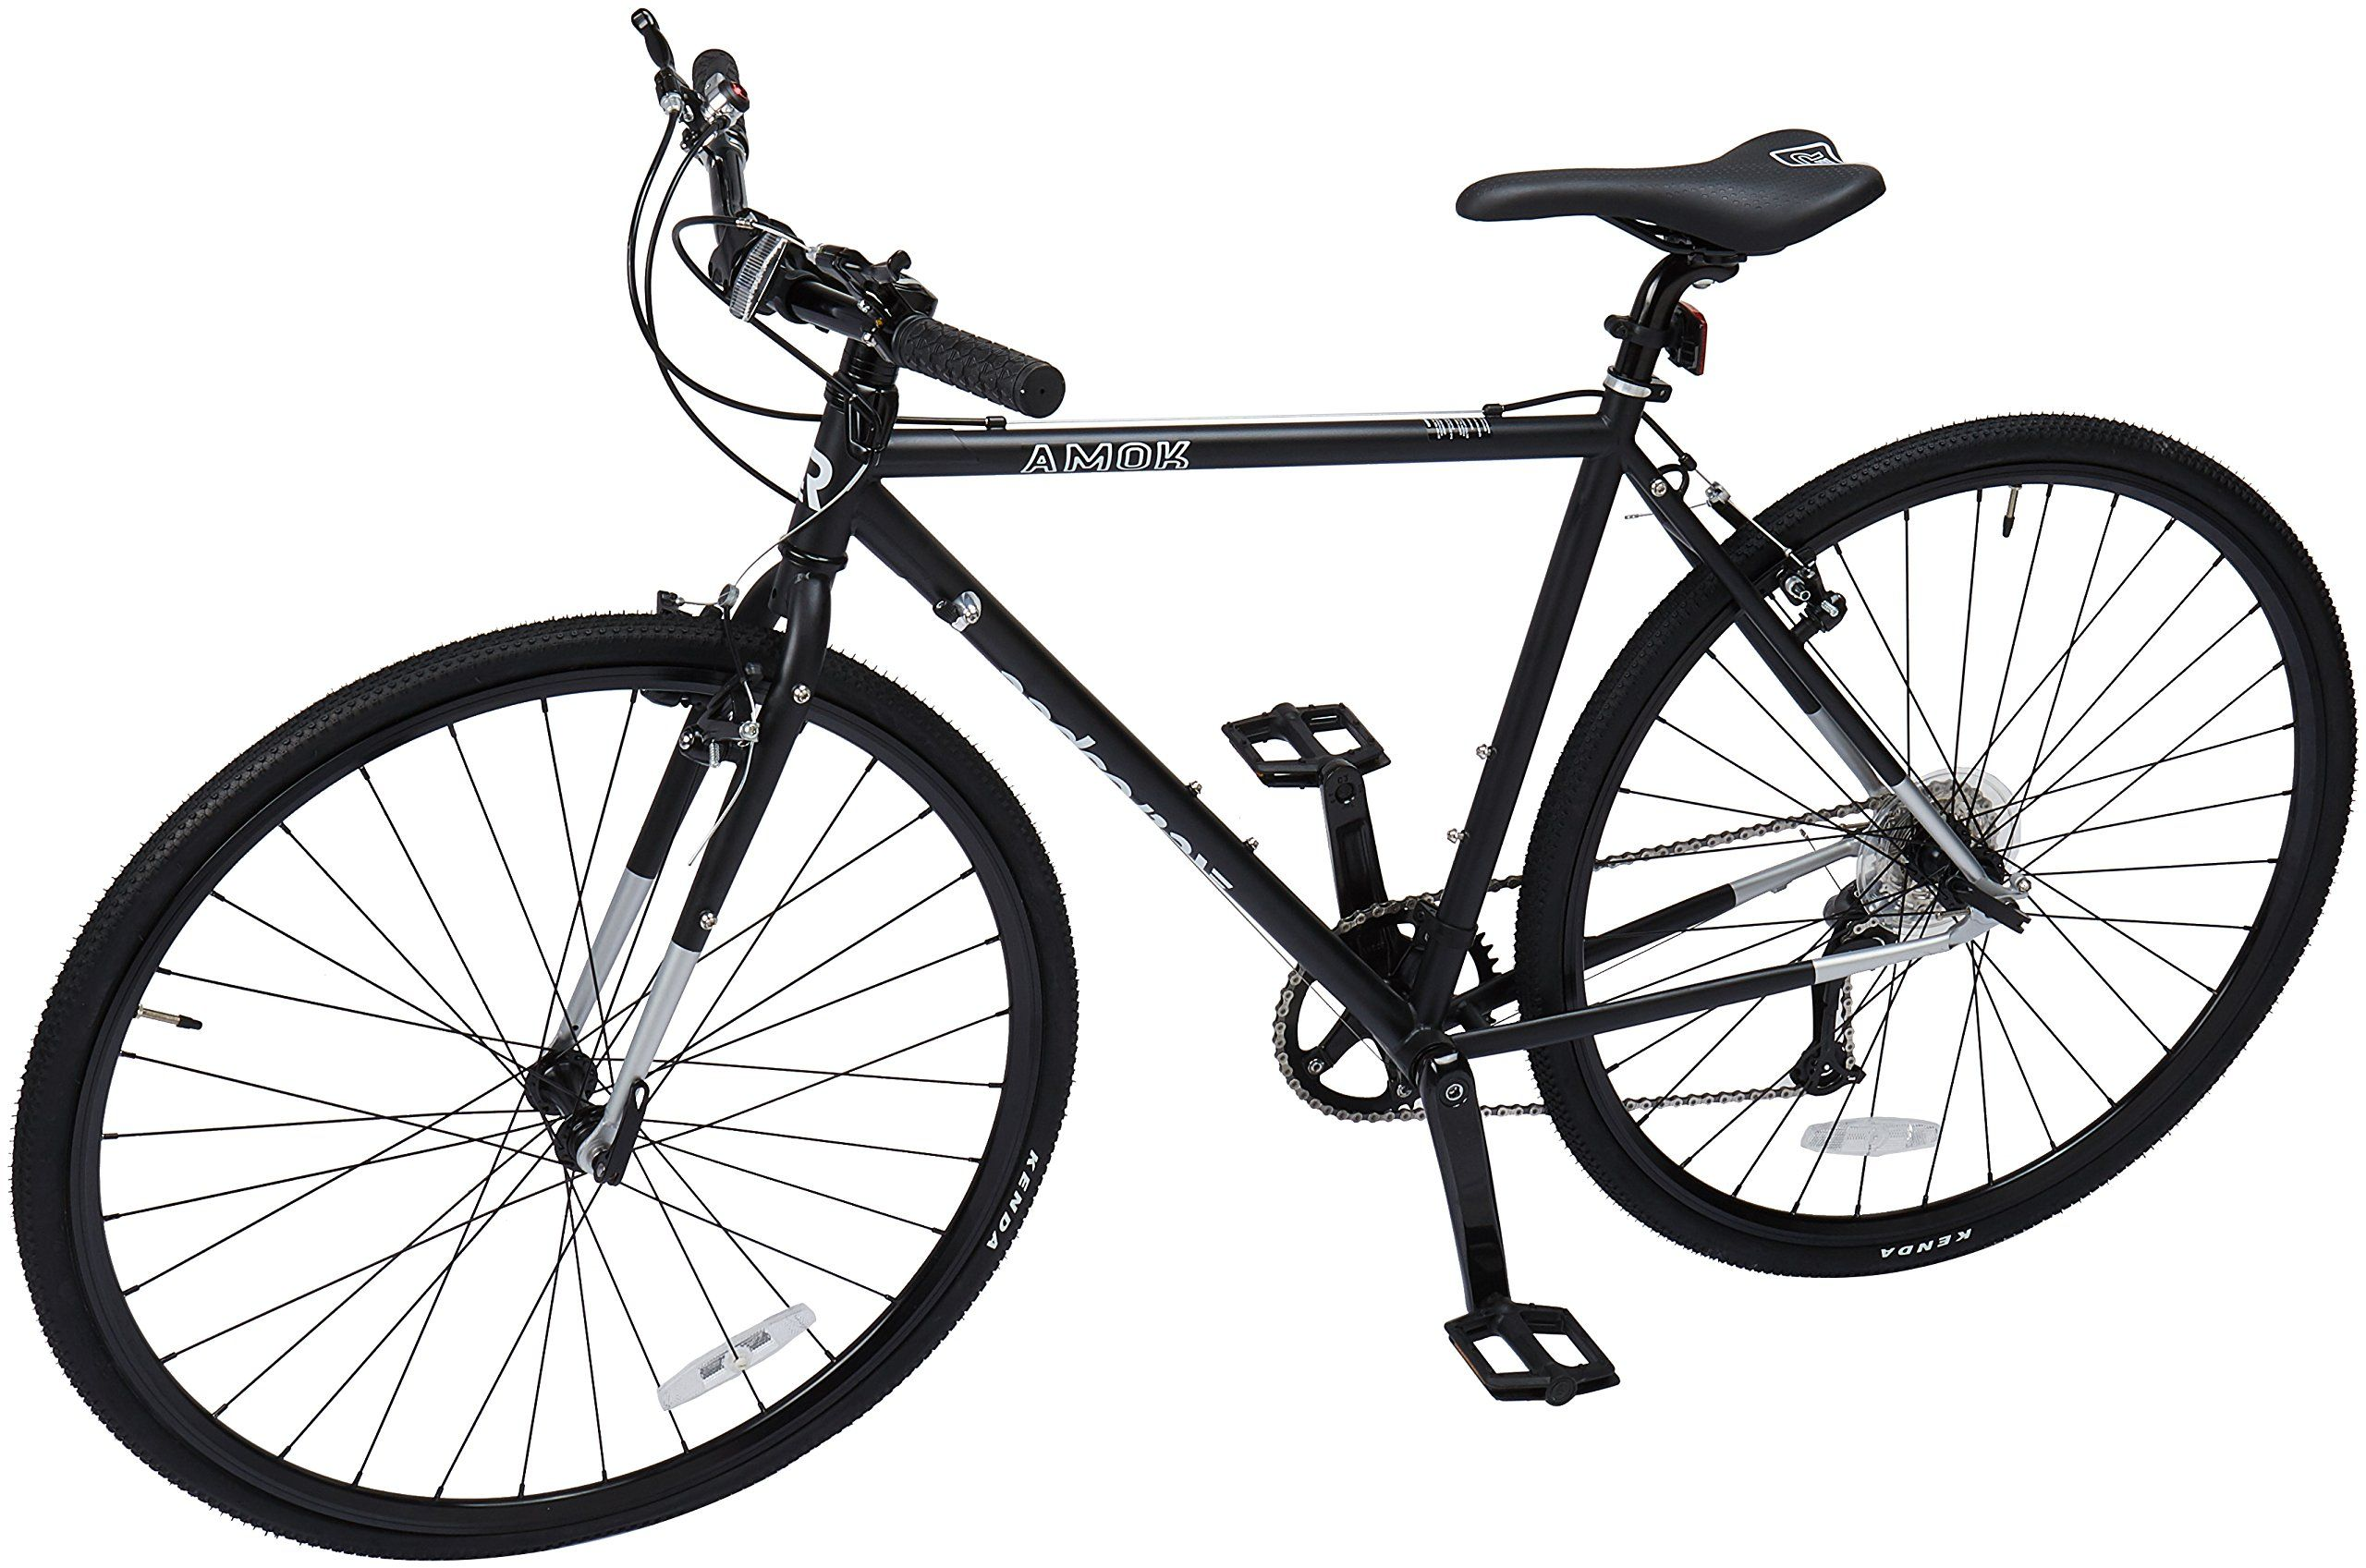 Retrospec Bicycles Amok V2 Cyclocross Ninespeed Commuter Bike With